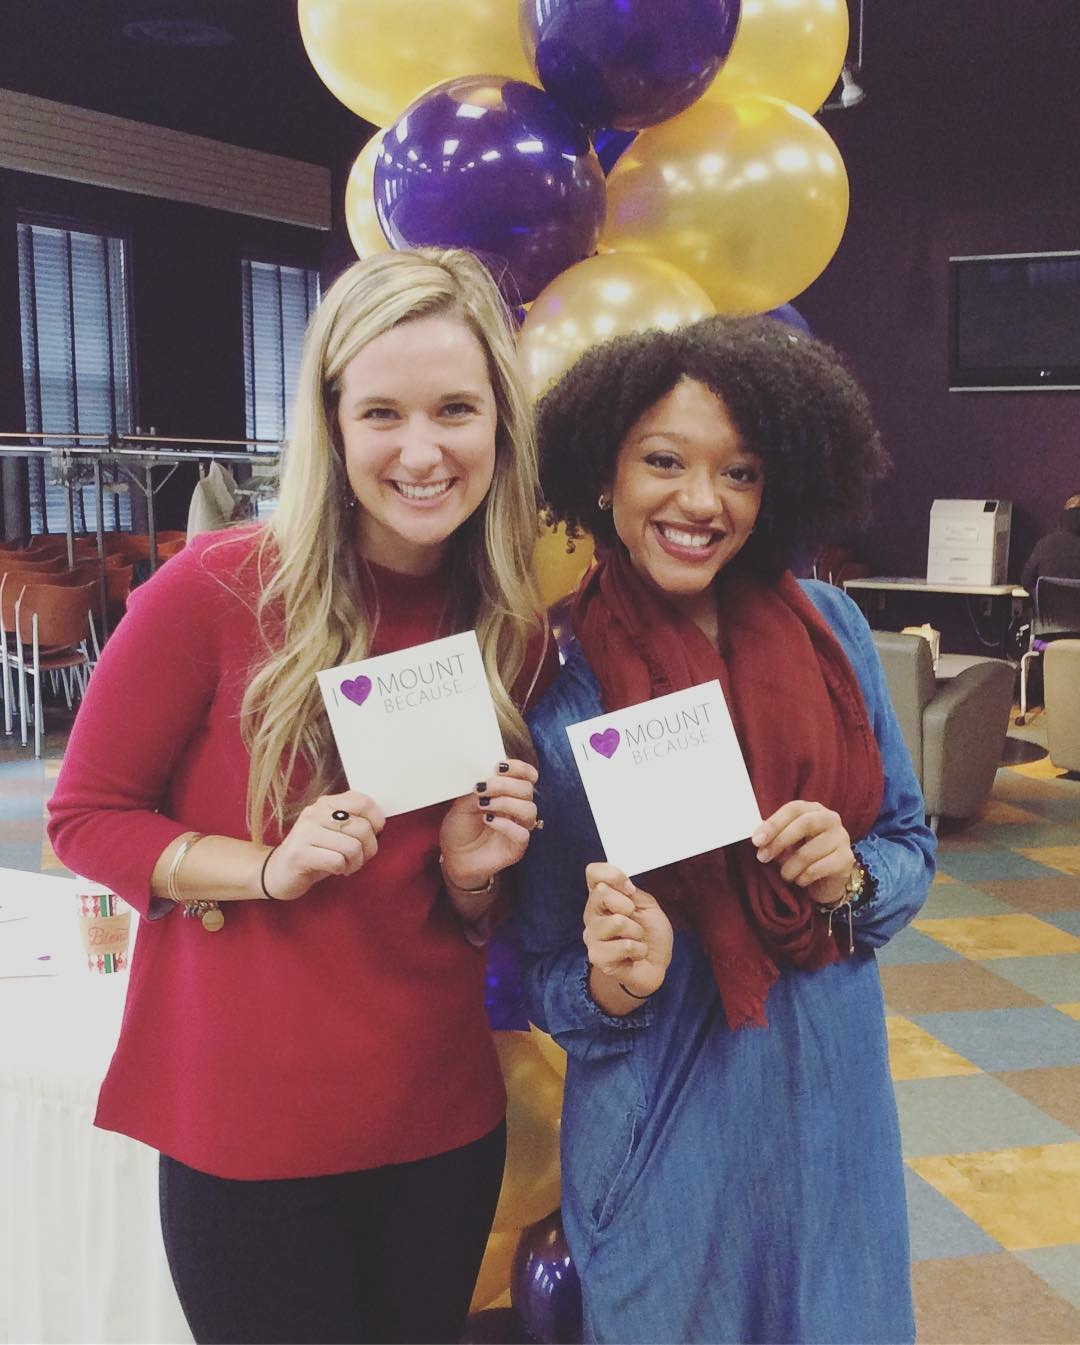 The Mount Union Fund's Bethany Leslie and Caitie Shimp displaying I Love Mount Union notes during Philanthropy Week 2018